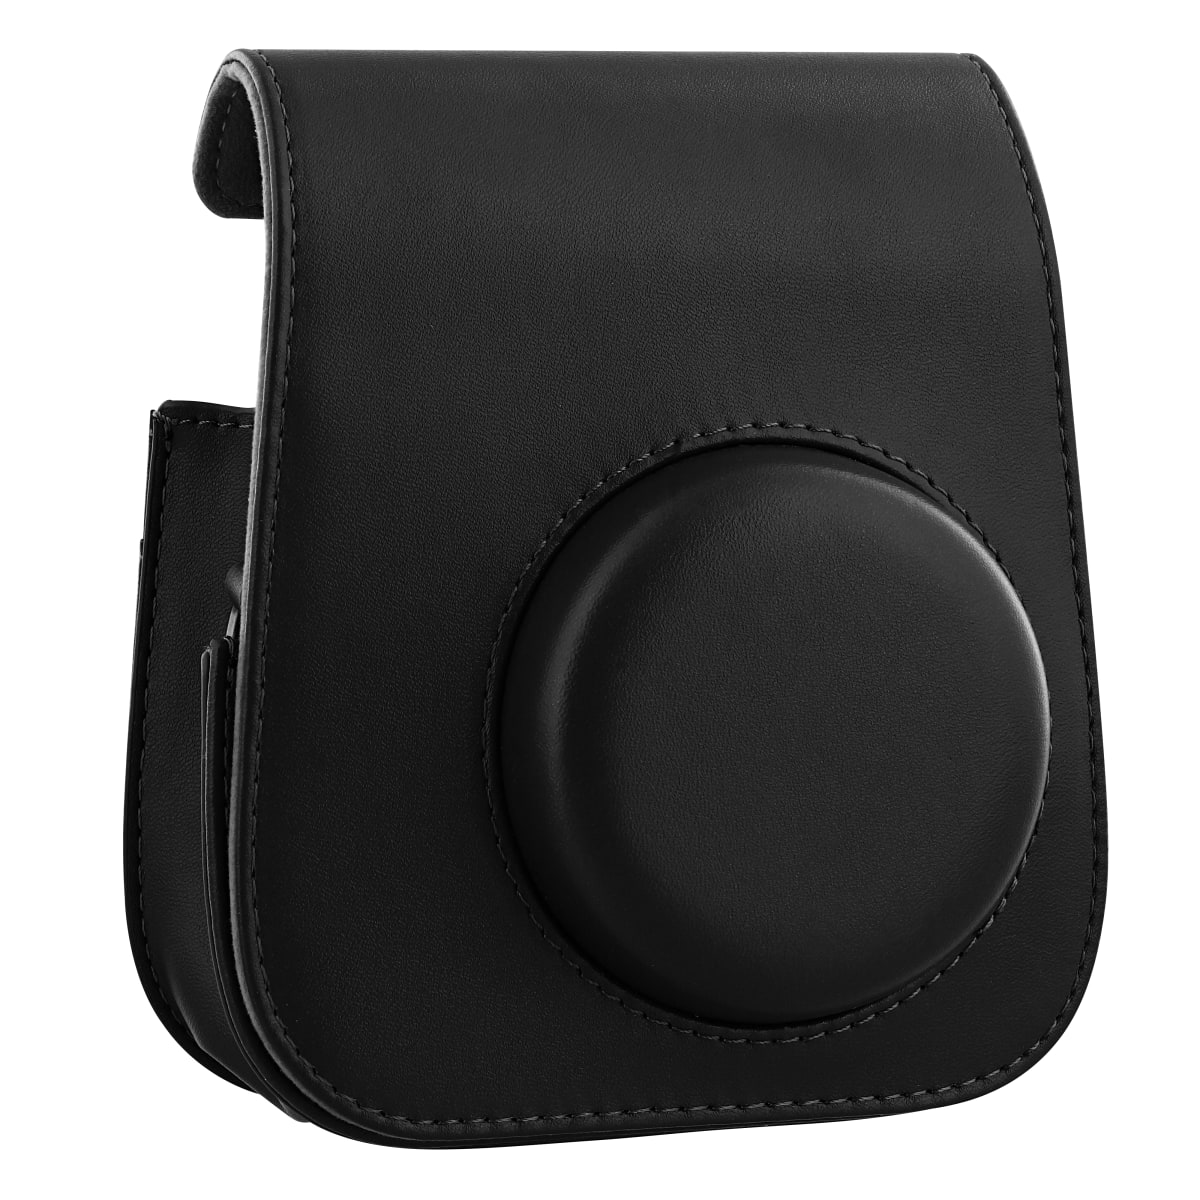 Instax mini 11 black case